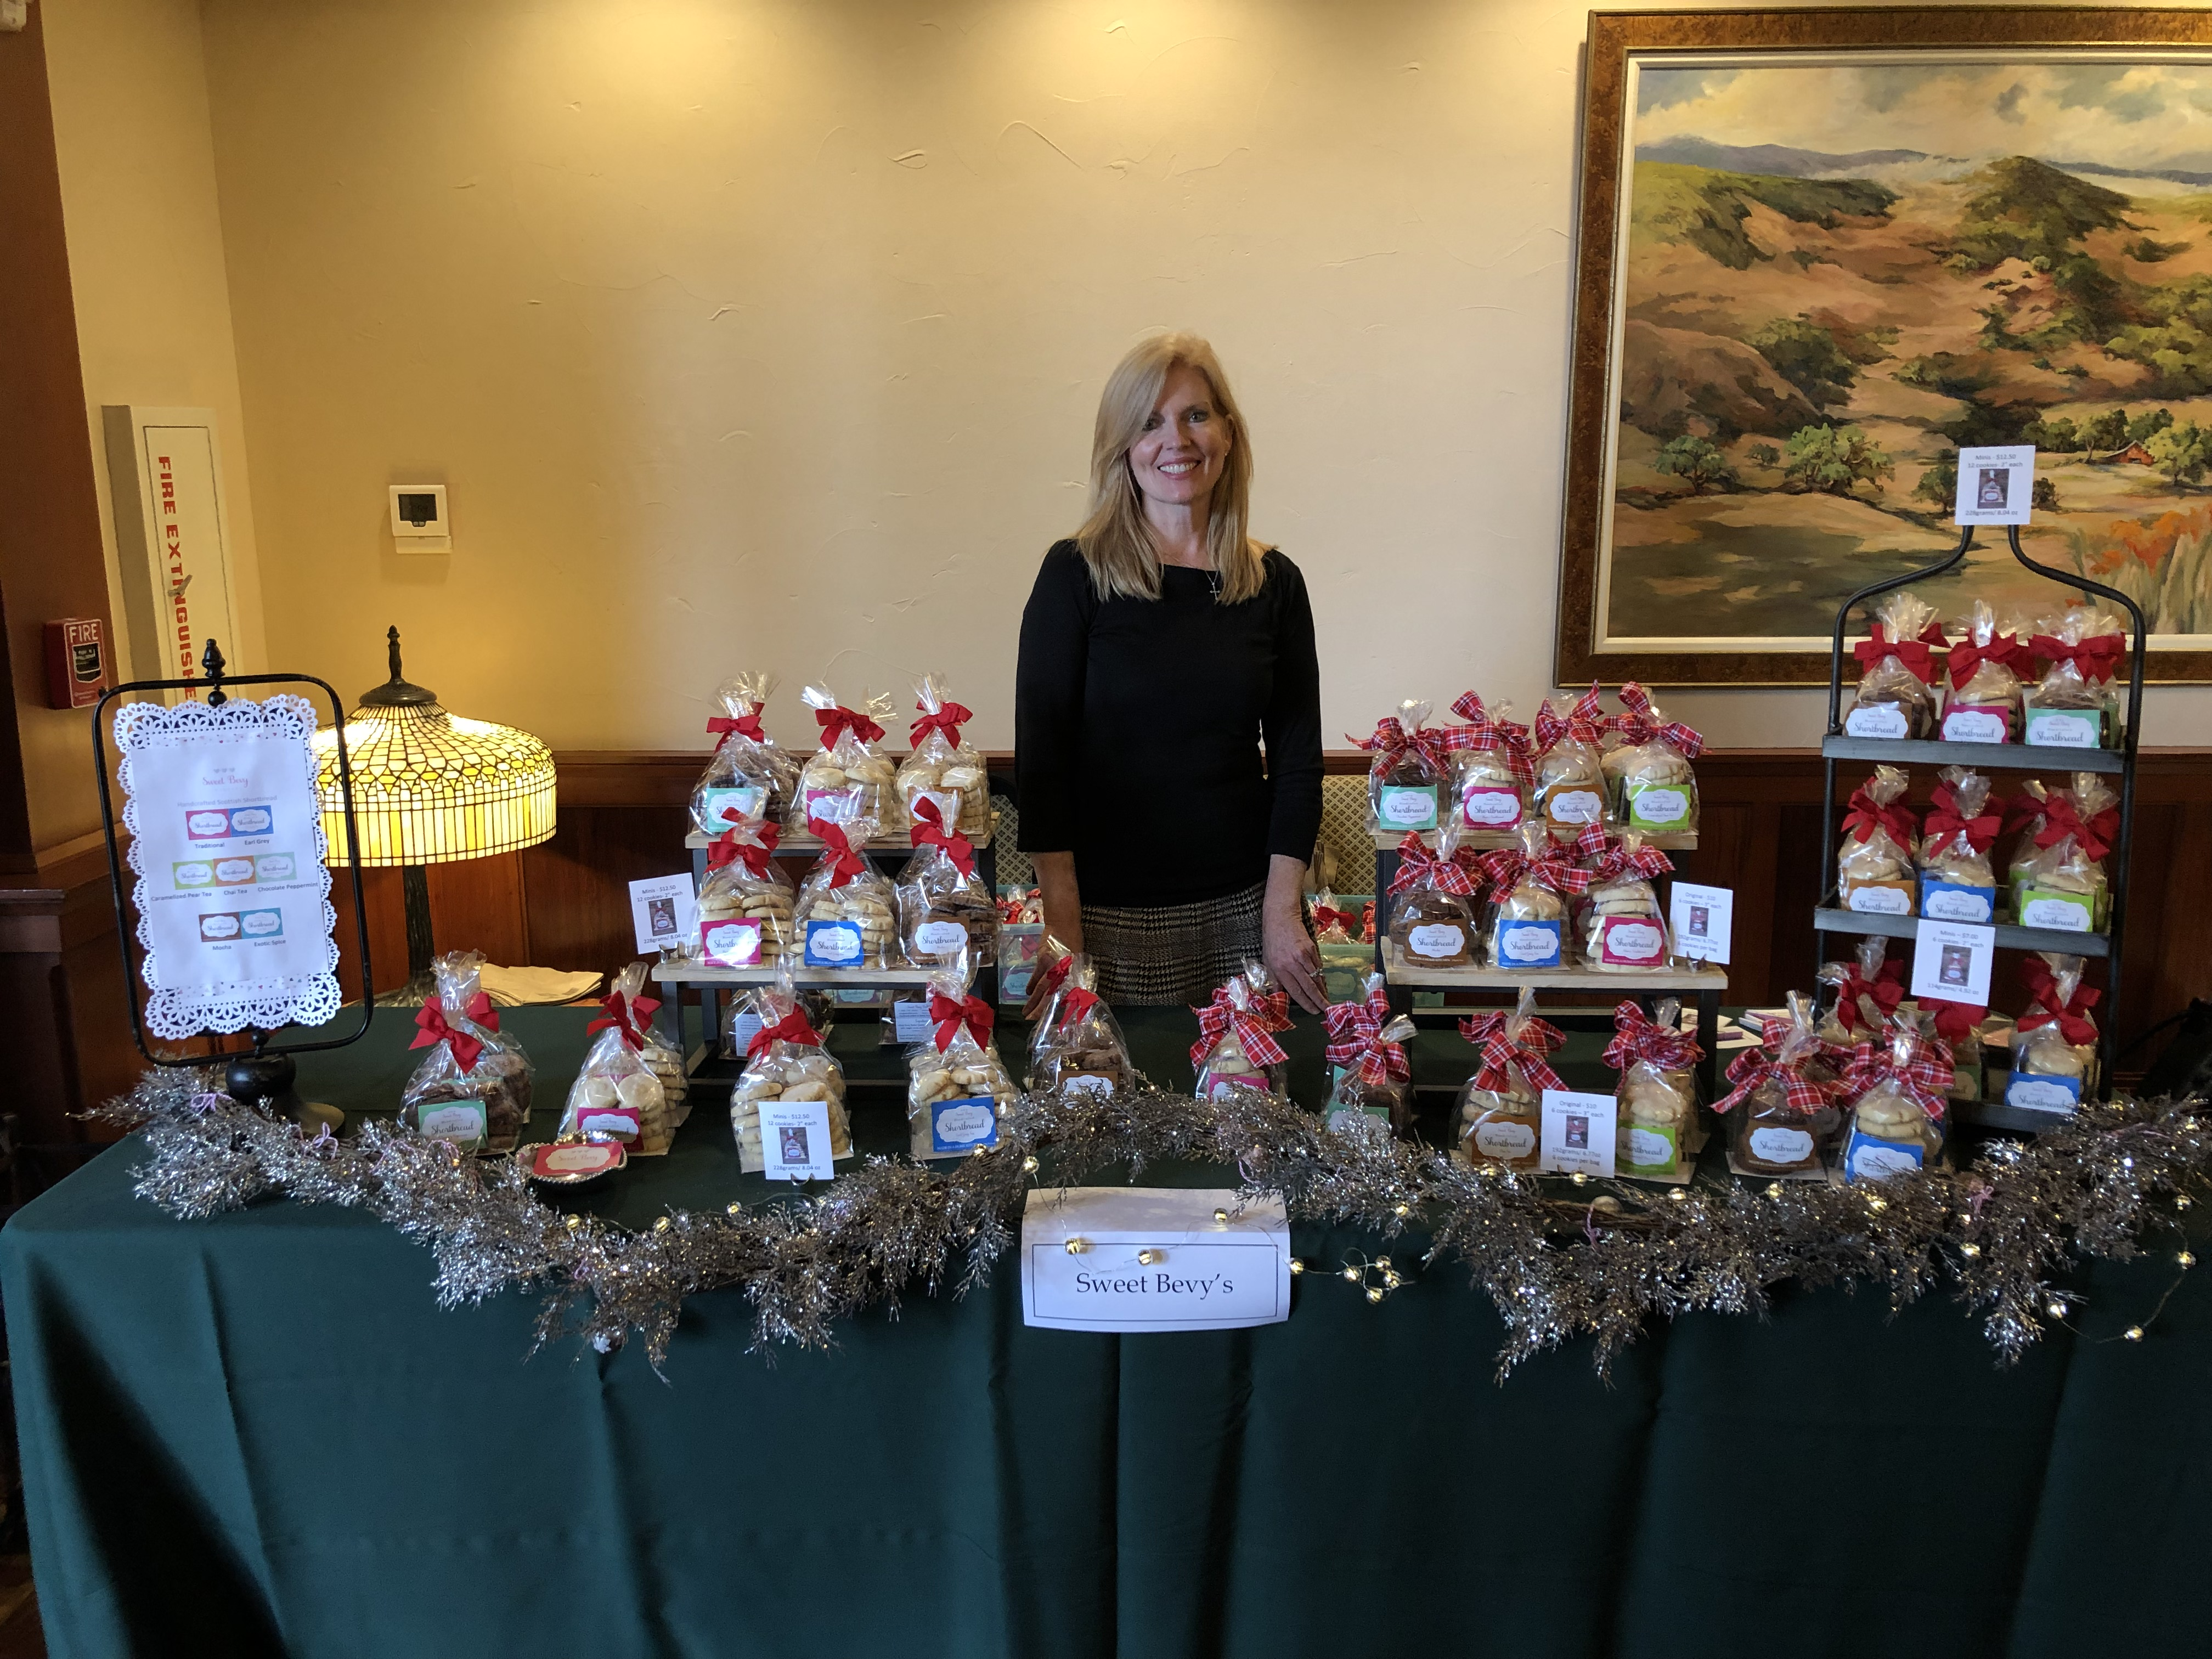 Sweet Bevy at the Los Altos Golf & Country Club - Sweet Bevy